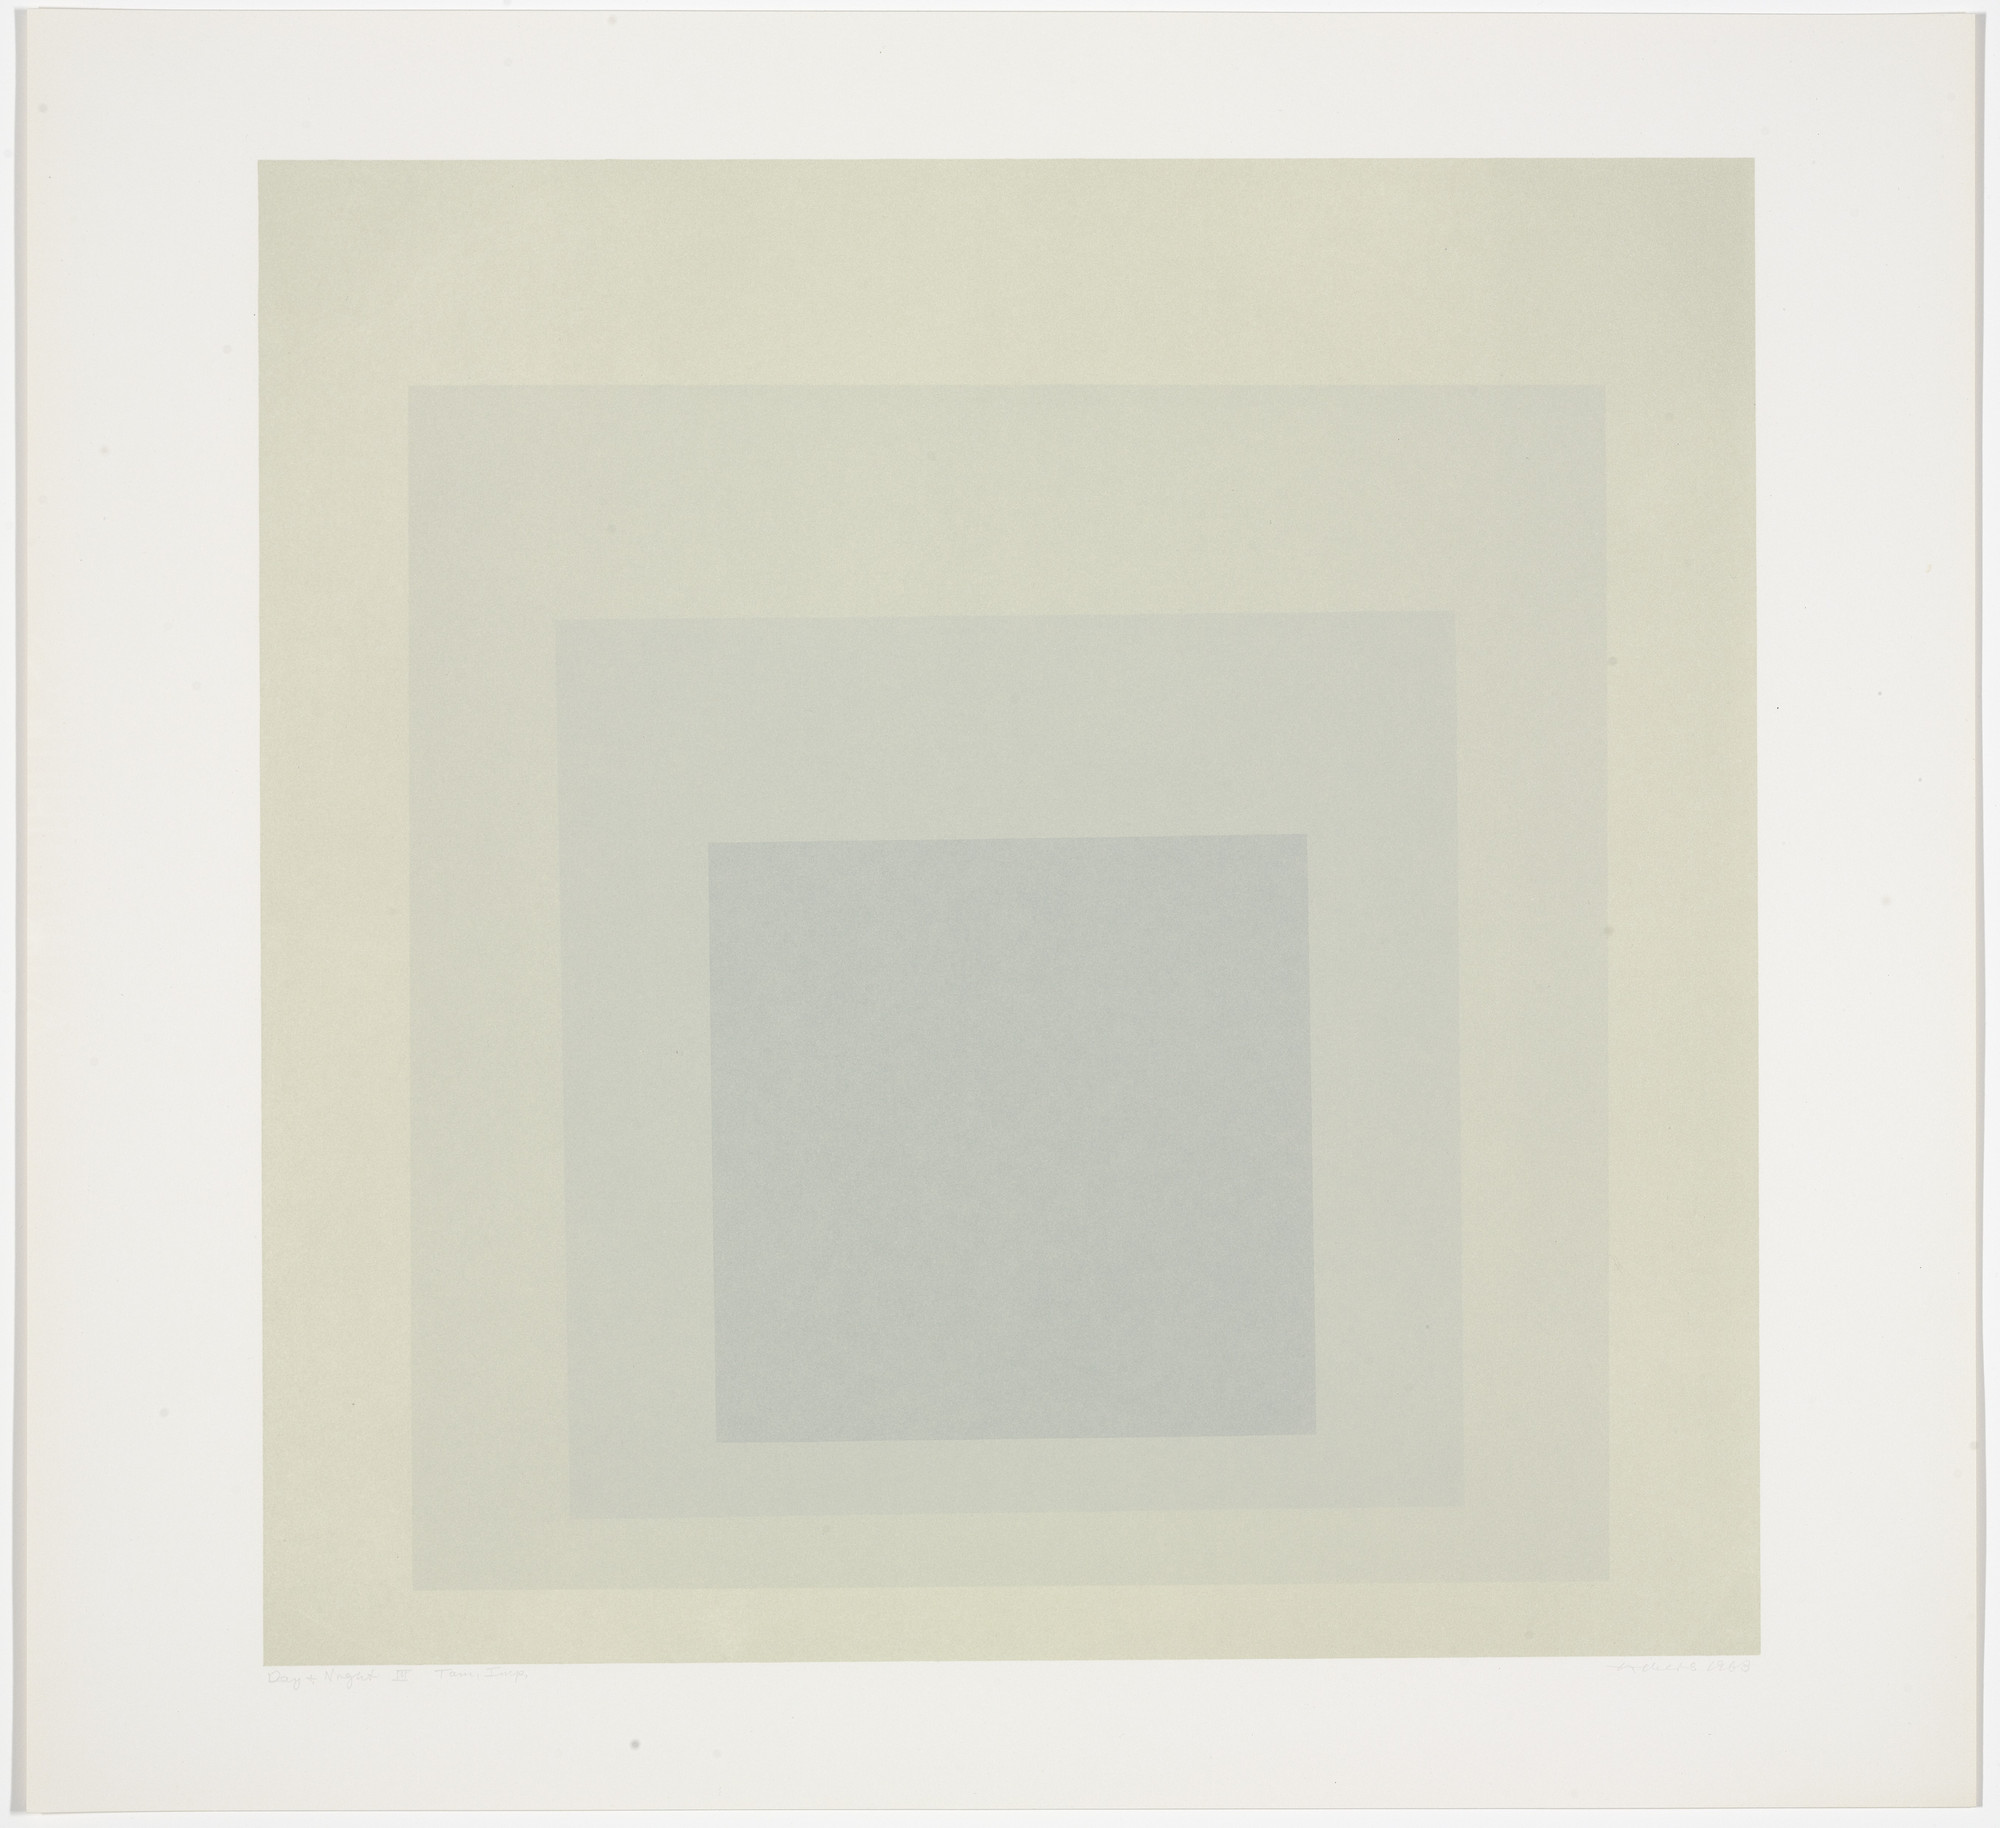 Josef Albers. Day + Night III from Day and Night: Homage to the Square. 1963